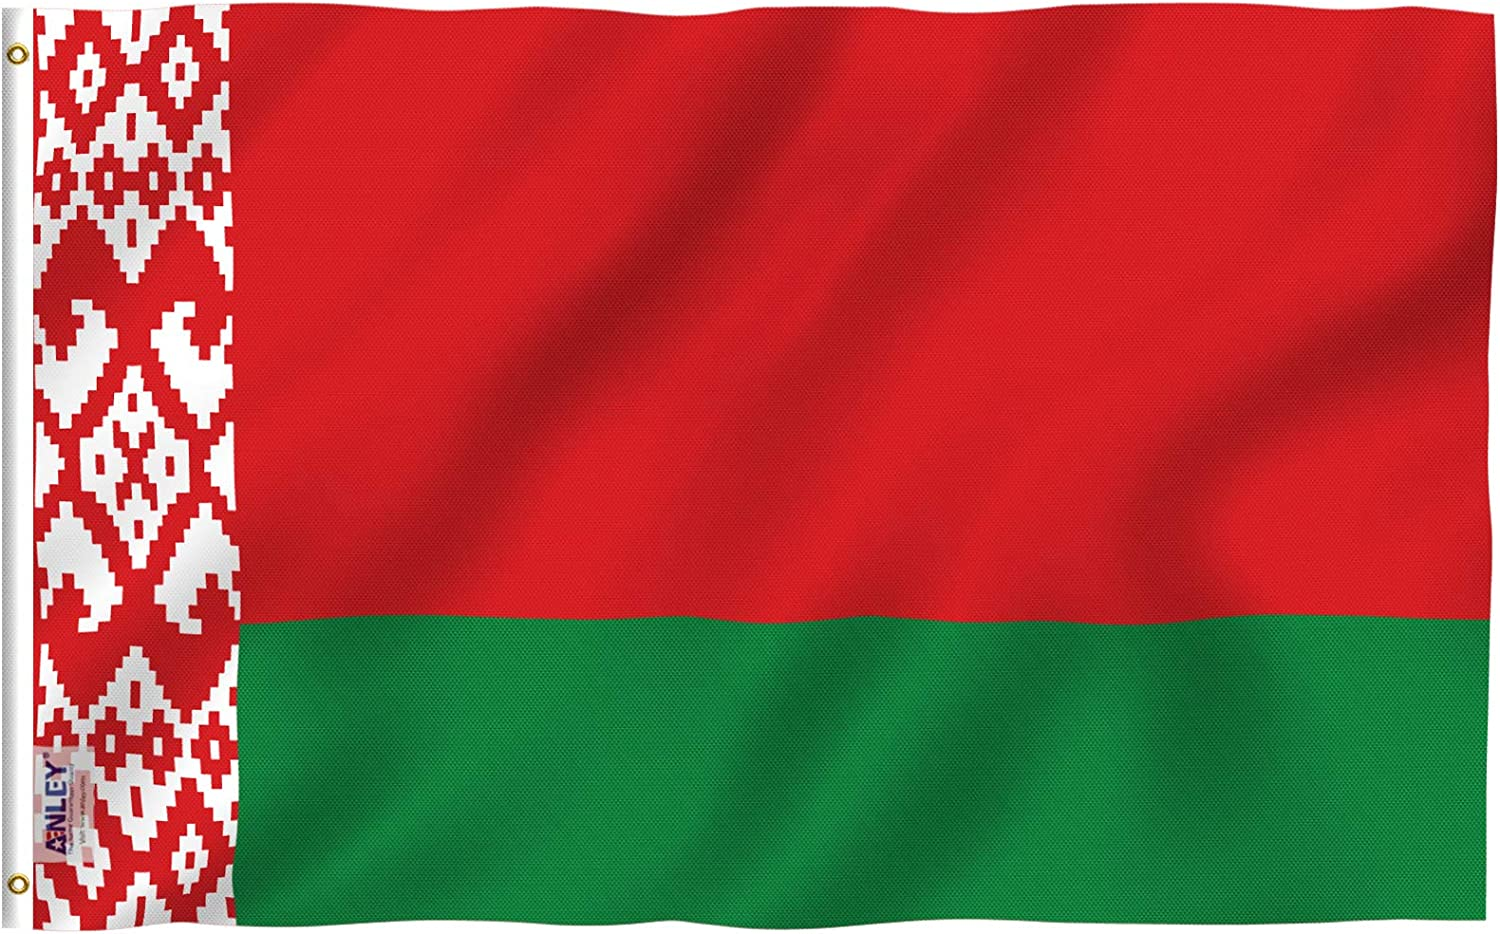 Anley Fly Breeze 3x5 Feet Belarus Flag - Vivid Color and Fade Proof - Canvas Header and Double Stitched - Republic of Belarus Flags Polyester with Brass Grommets 3 X 5 FT